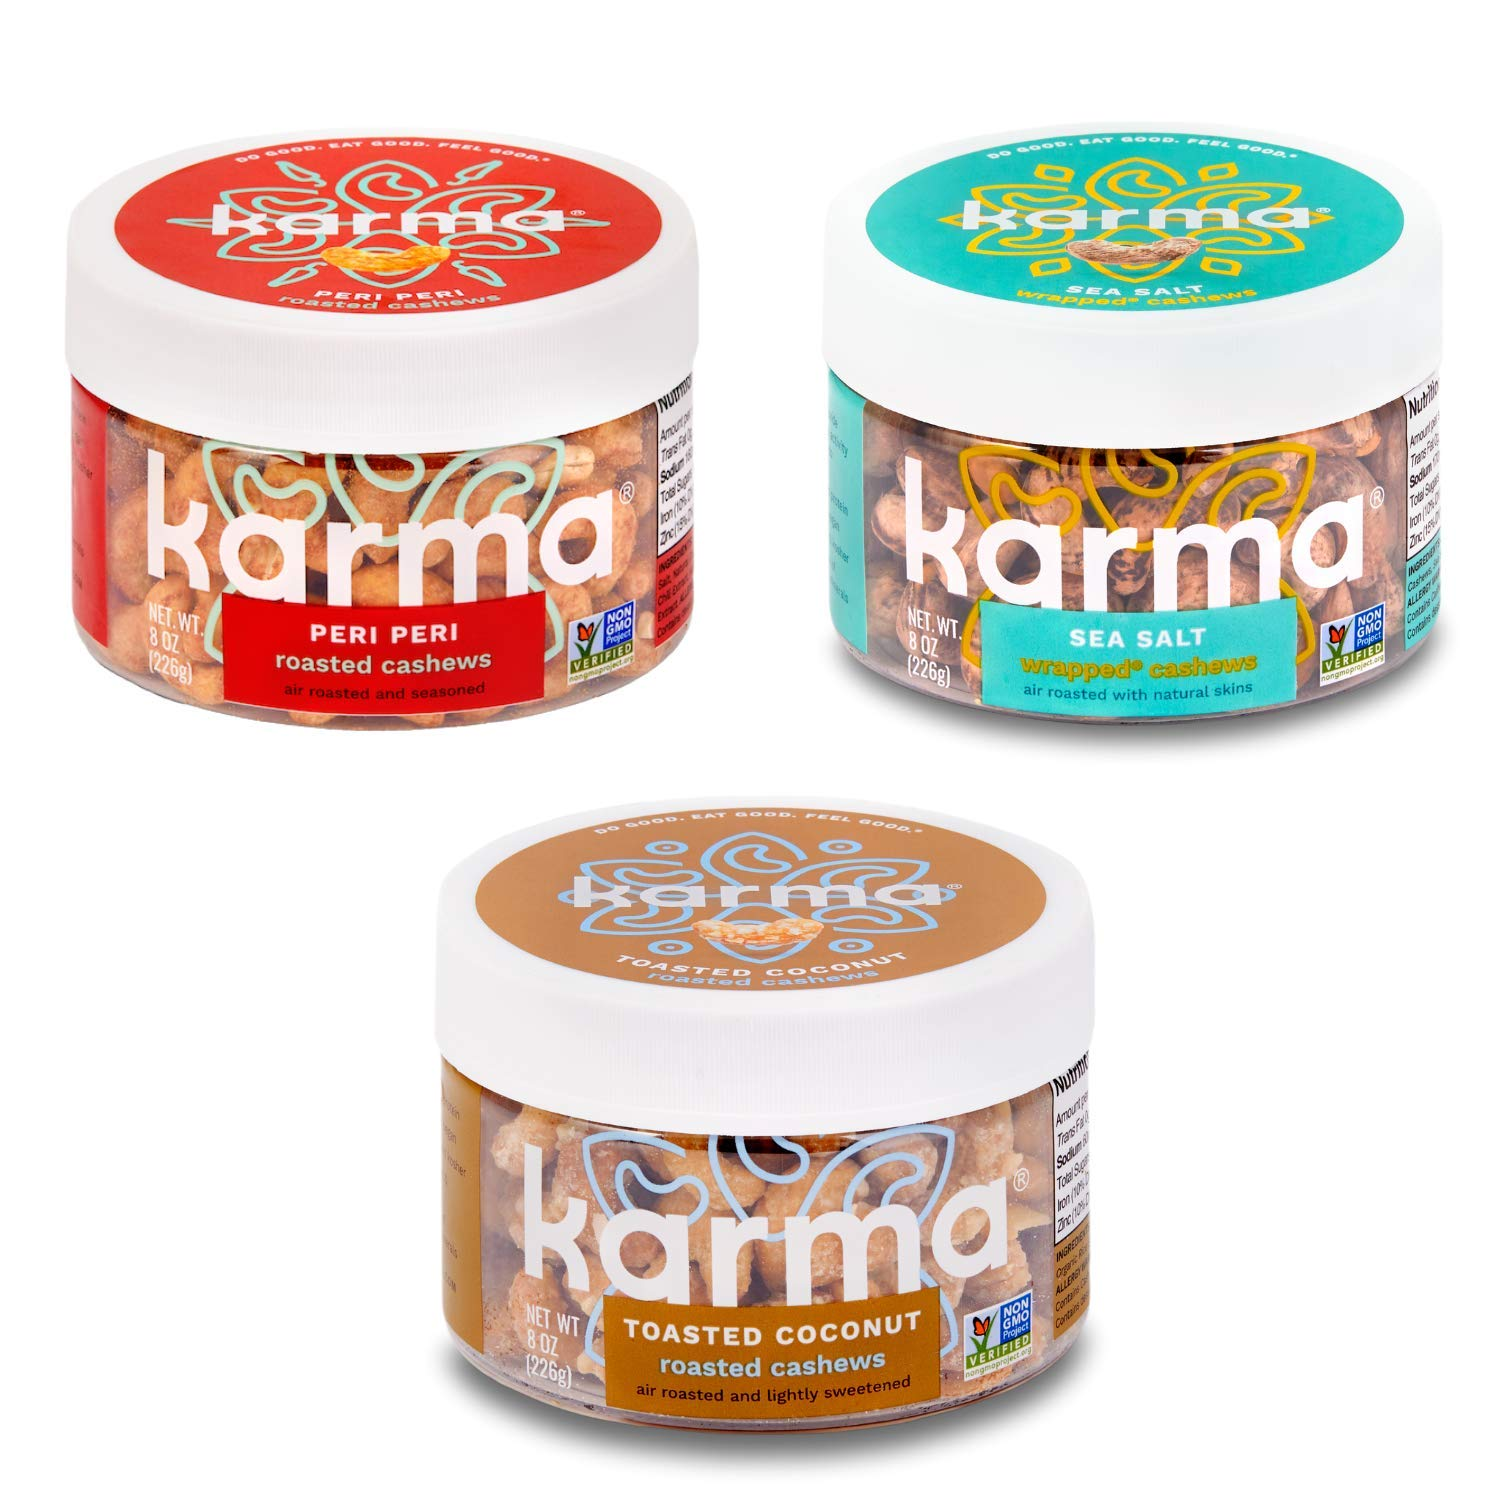 Karma Nuts Cashews Variety Pack, Whole, Roasted, Vegan, Non Gmo, Gluten Free, Low Carb, Low Calorie, Natural, Healthy, Everyday Nut Snack (Best Sellers Variety Pack)